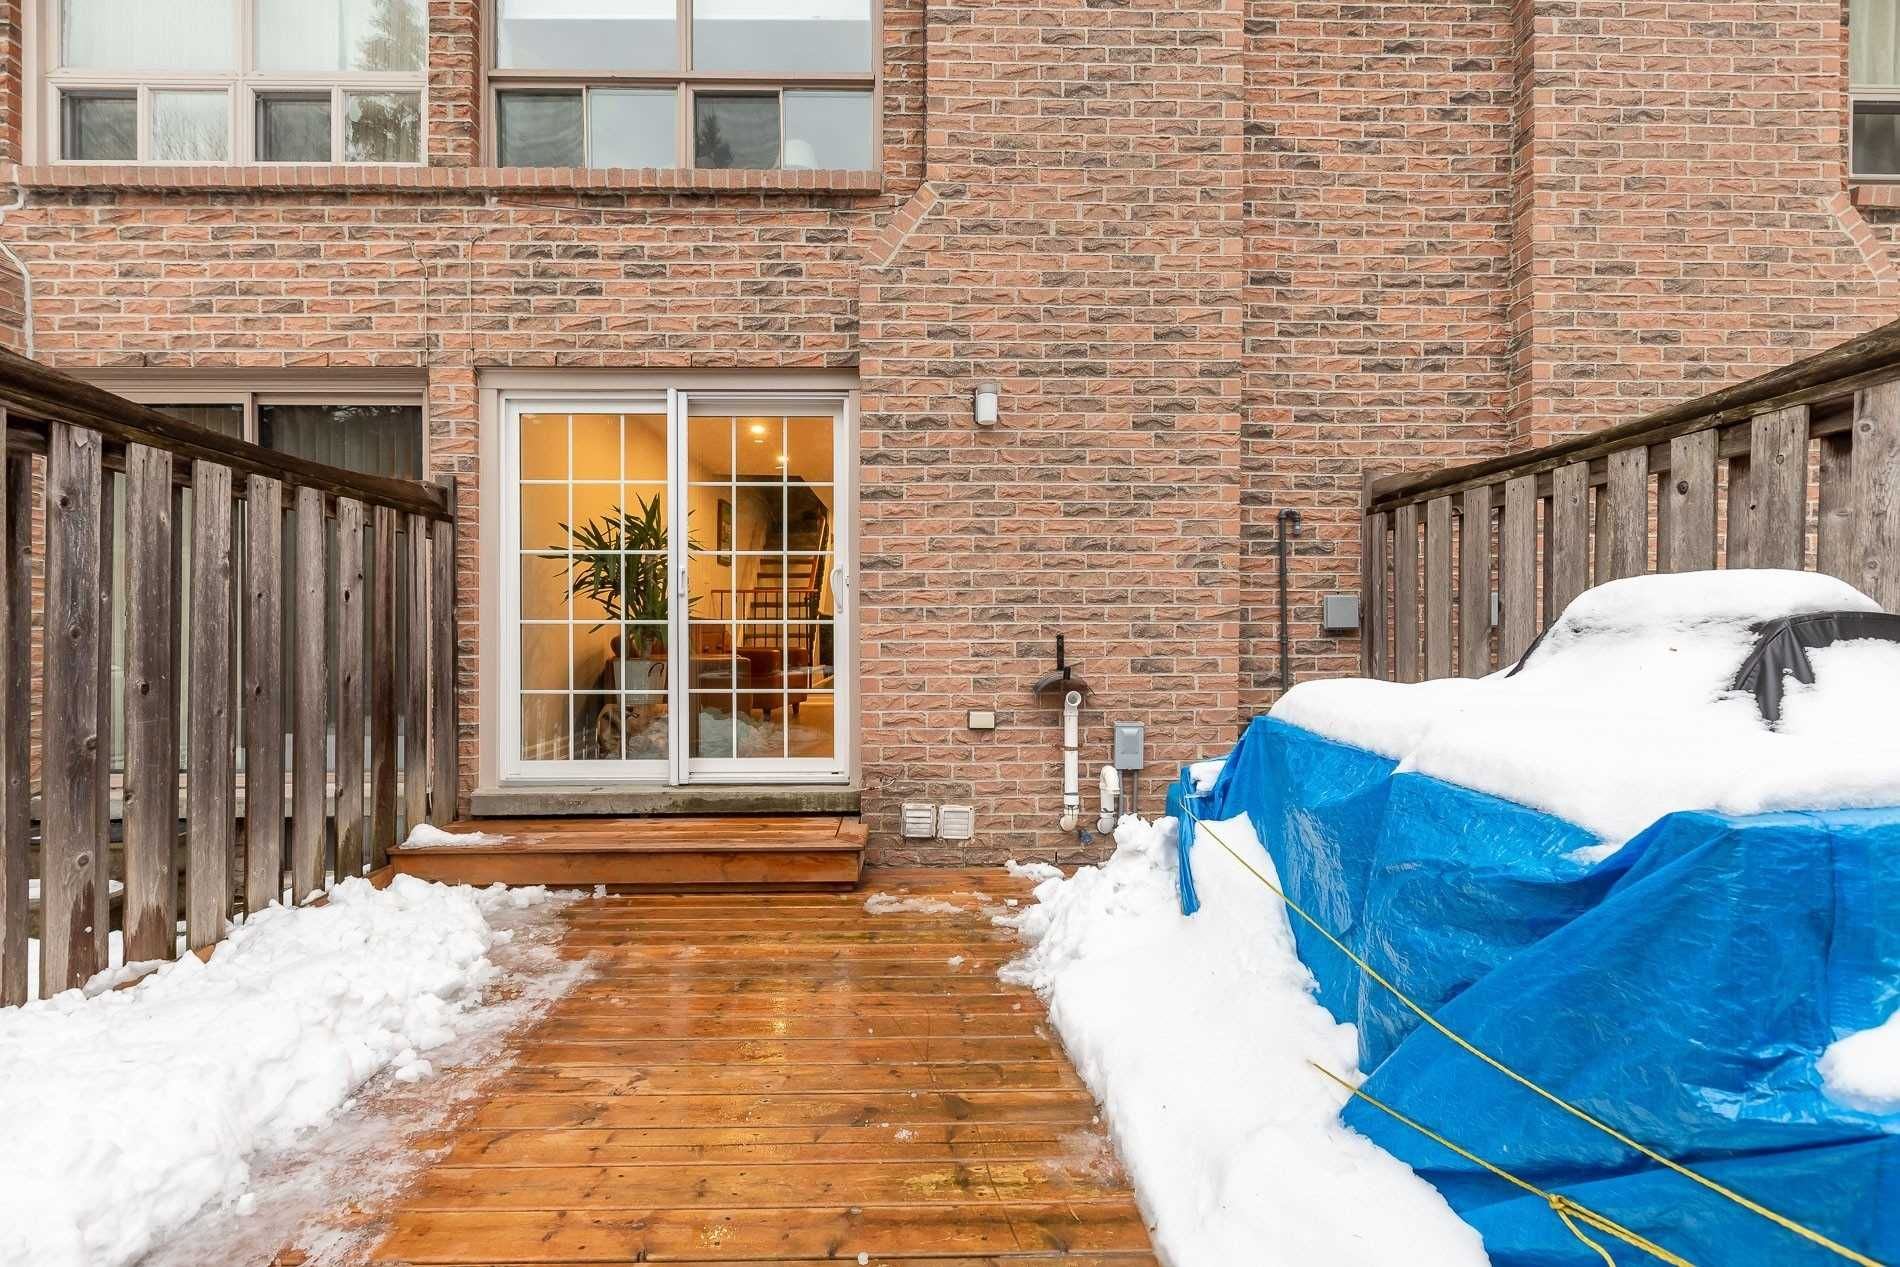 1-110 Dutch Myrtleway. This condo townhouse at Dutch Myrtleway Townhomes is located in  North York, Toronto